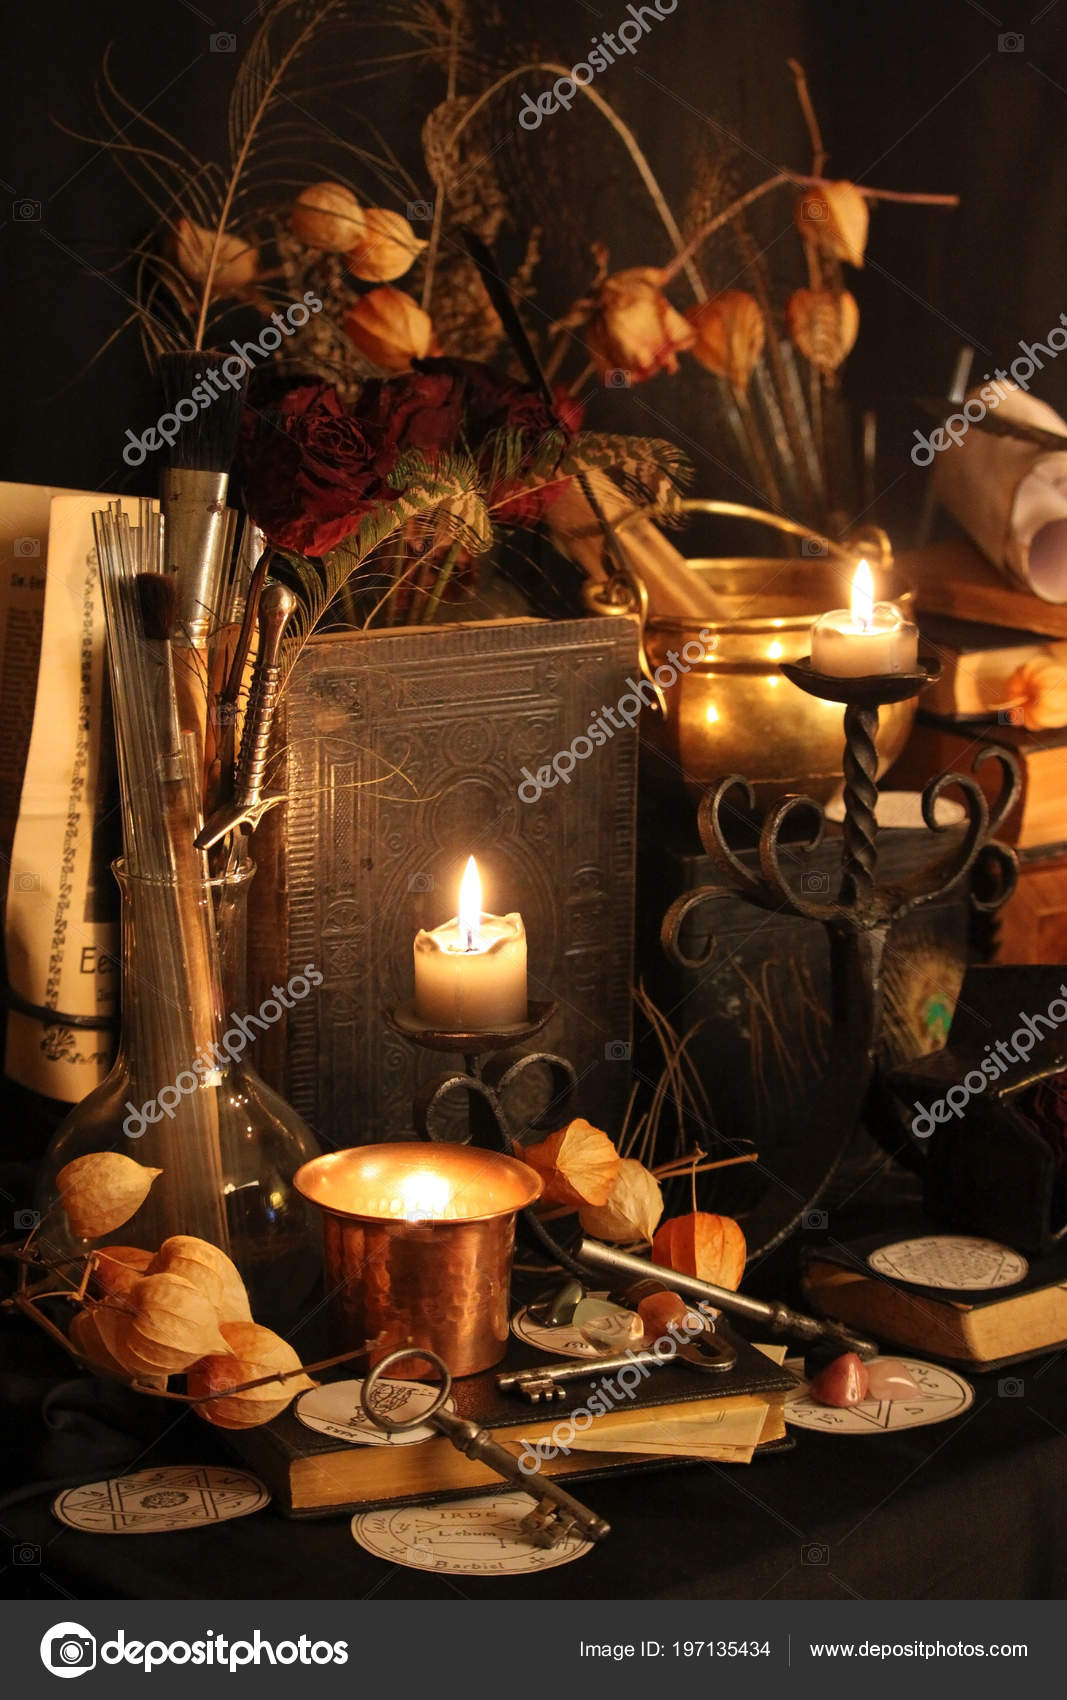 Black Magic Spells Wiccan Spells Herbs Still Live Old Oil